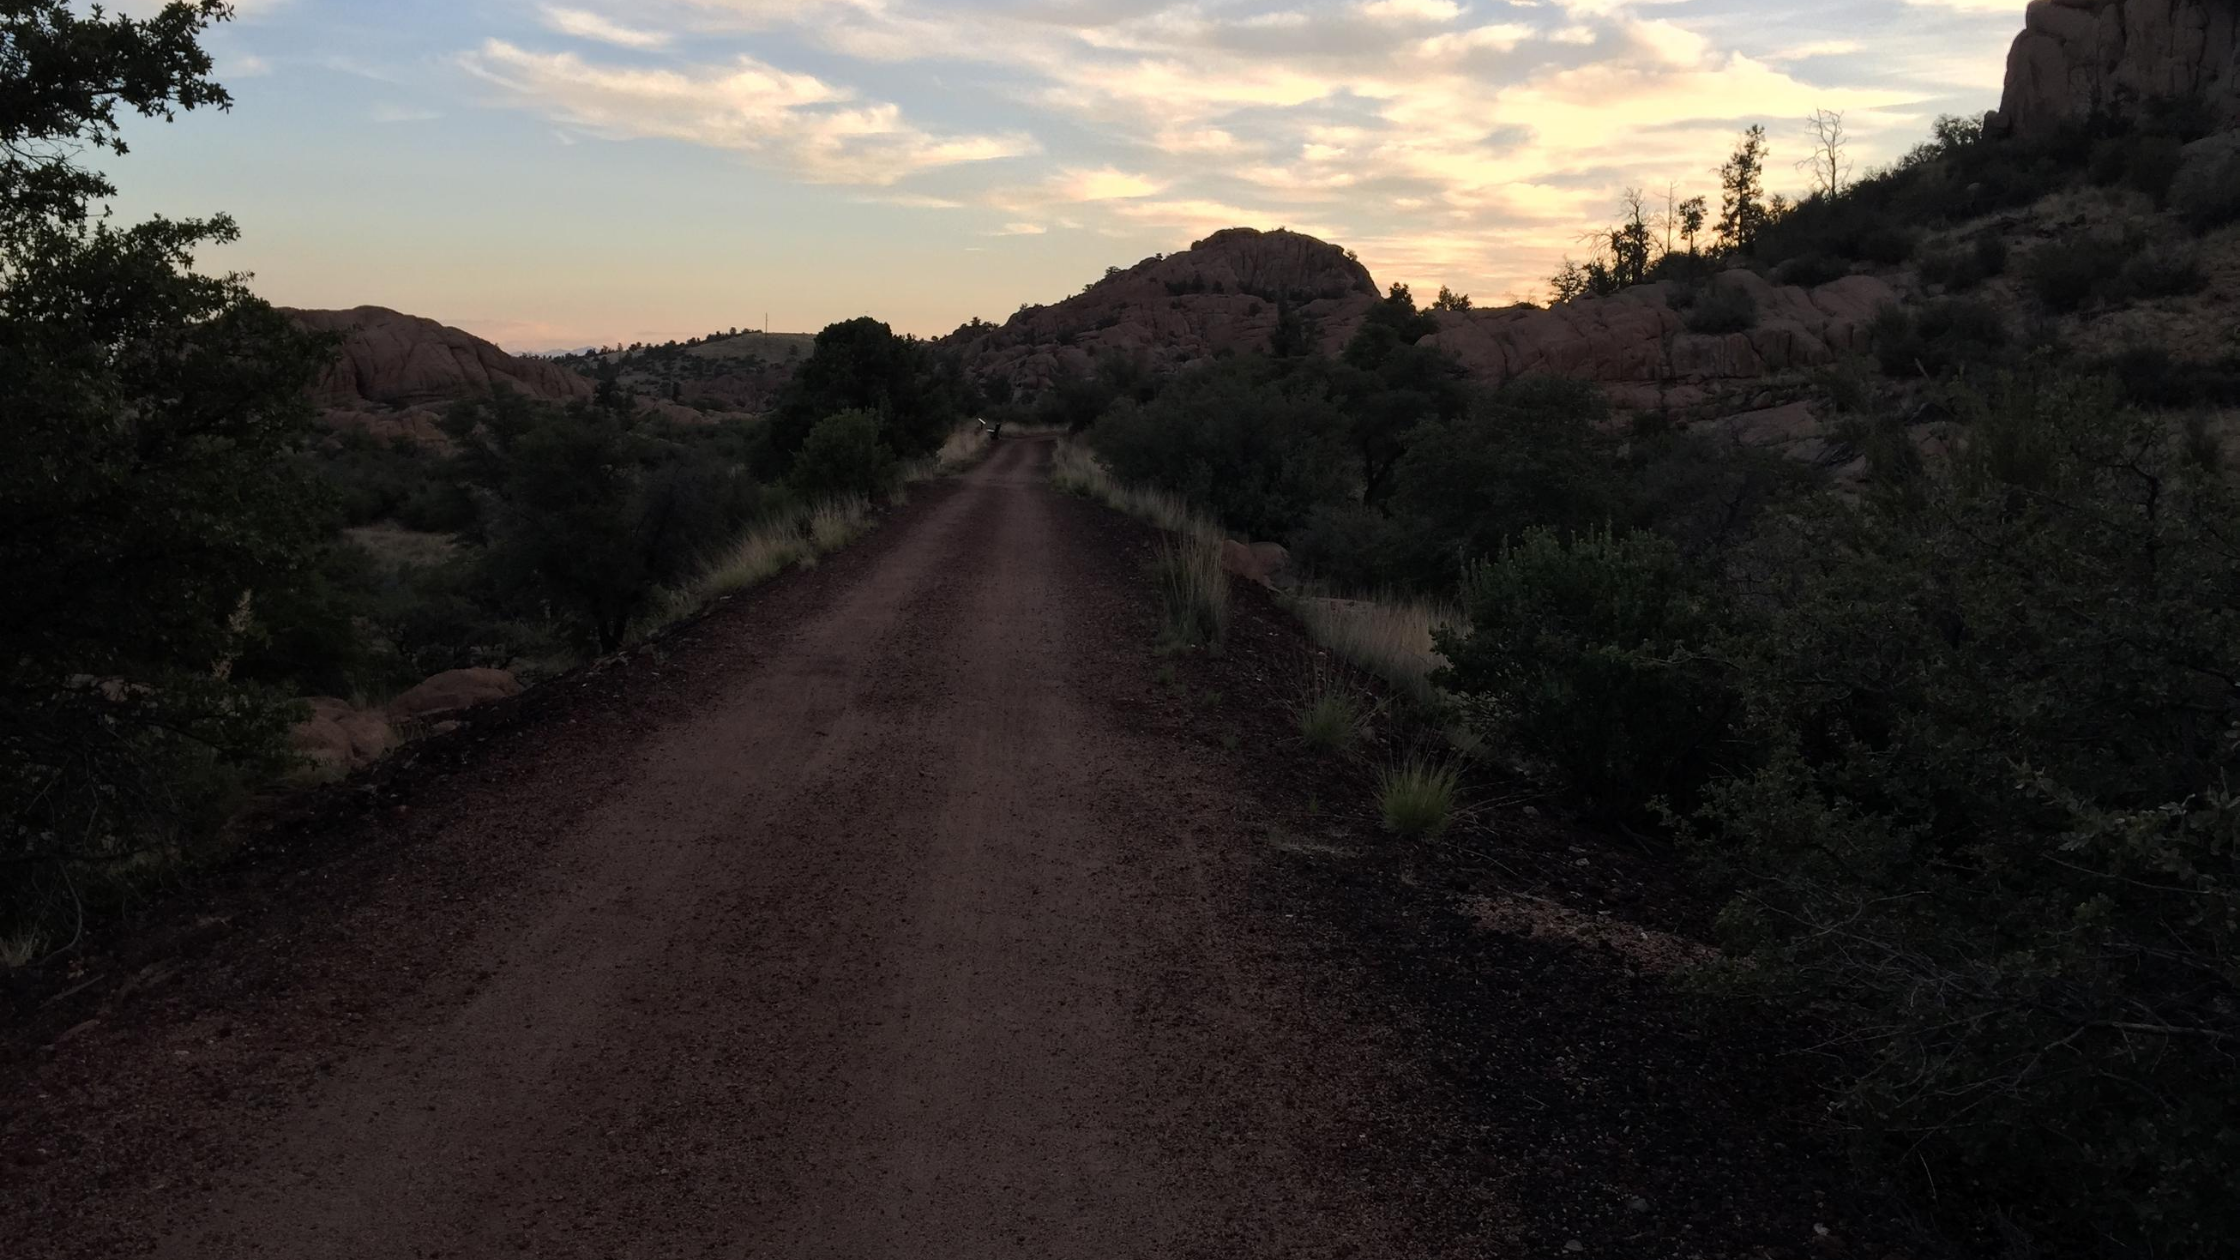 the road up from Phoenix to Prescott with lush trees around